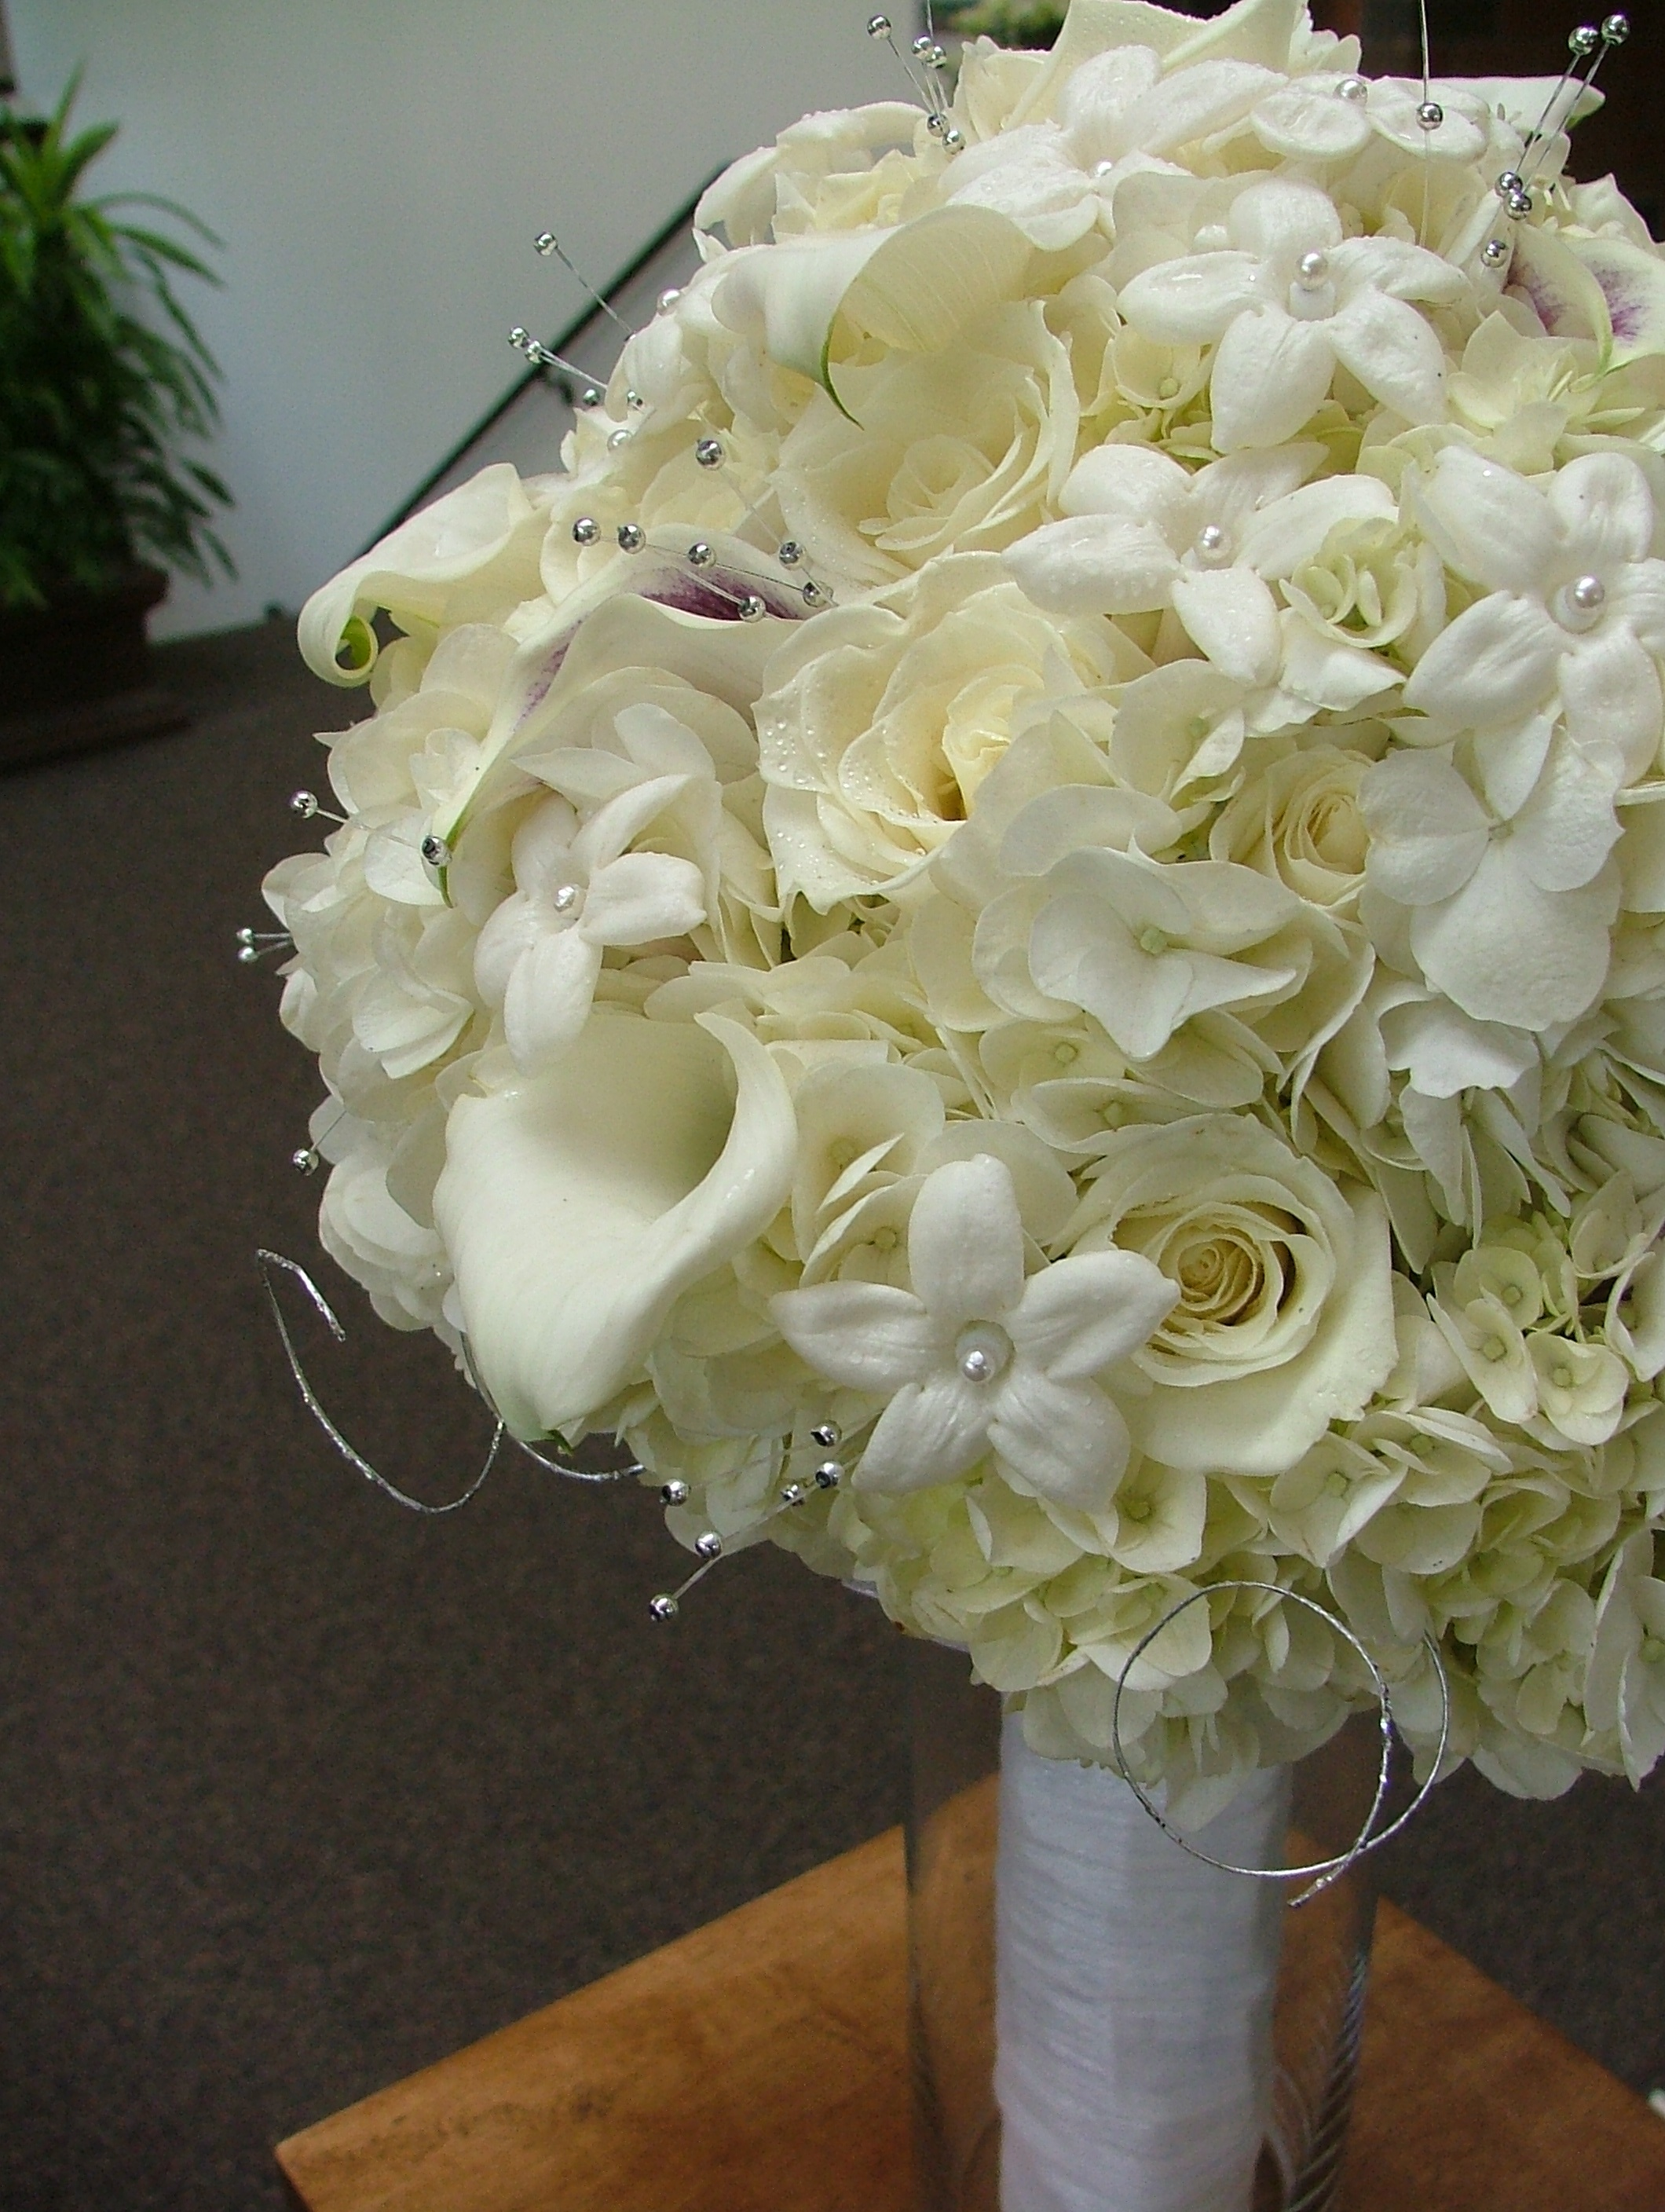 Bridal bouquets peonies hydrangeas roses 2013 lilies tulips with brooches purple white roses - Flowers good luck bridal bouquet ...